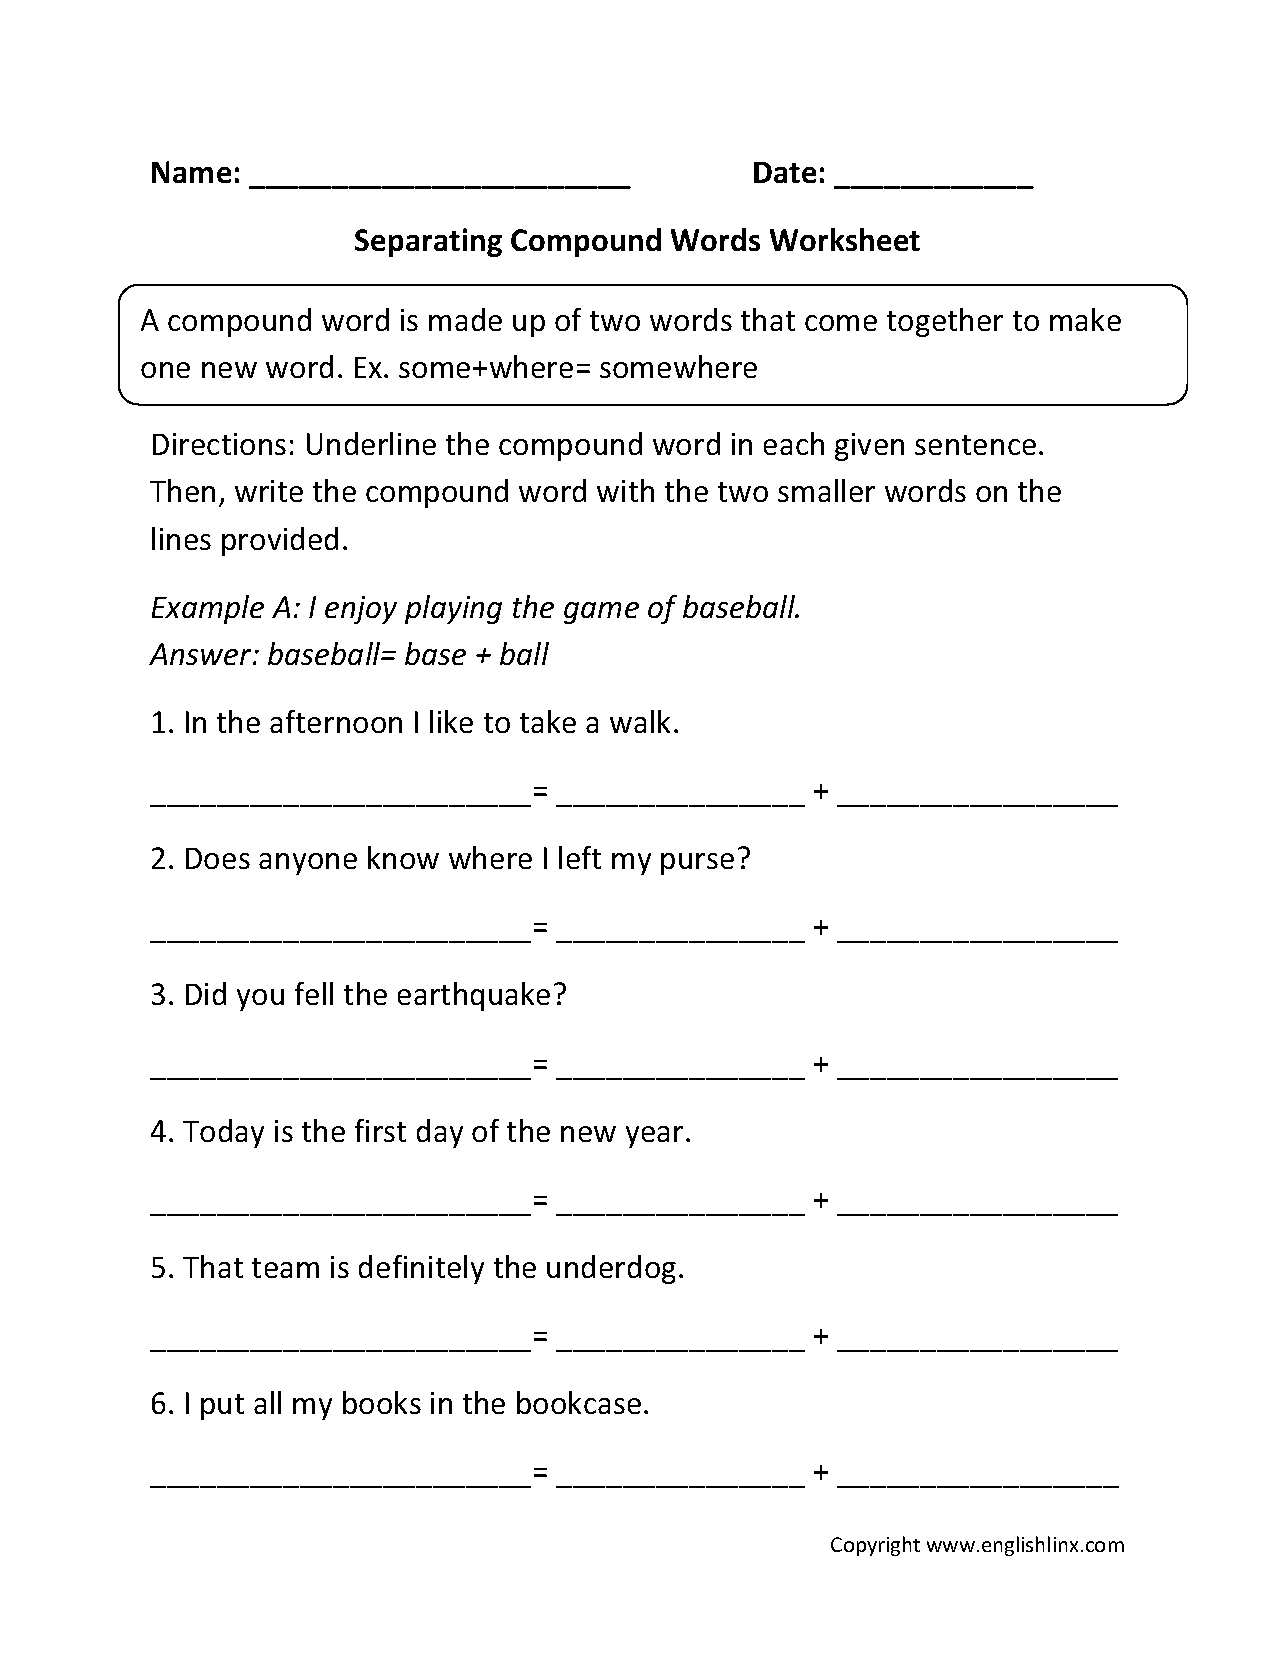 Worksheets Compound Words Worksheet englishlinx com compound words worksheets separating worksheets